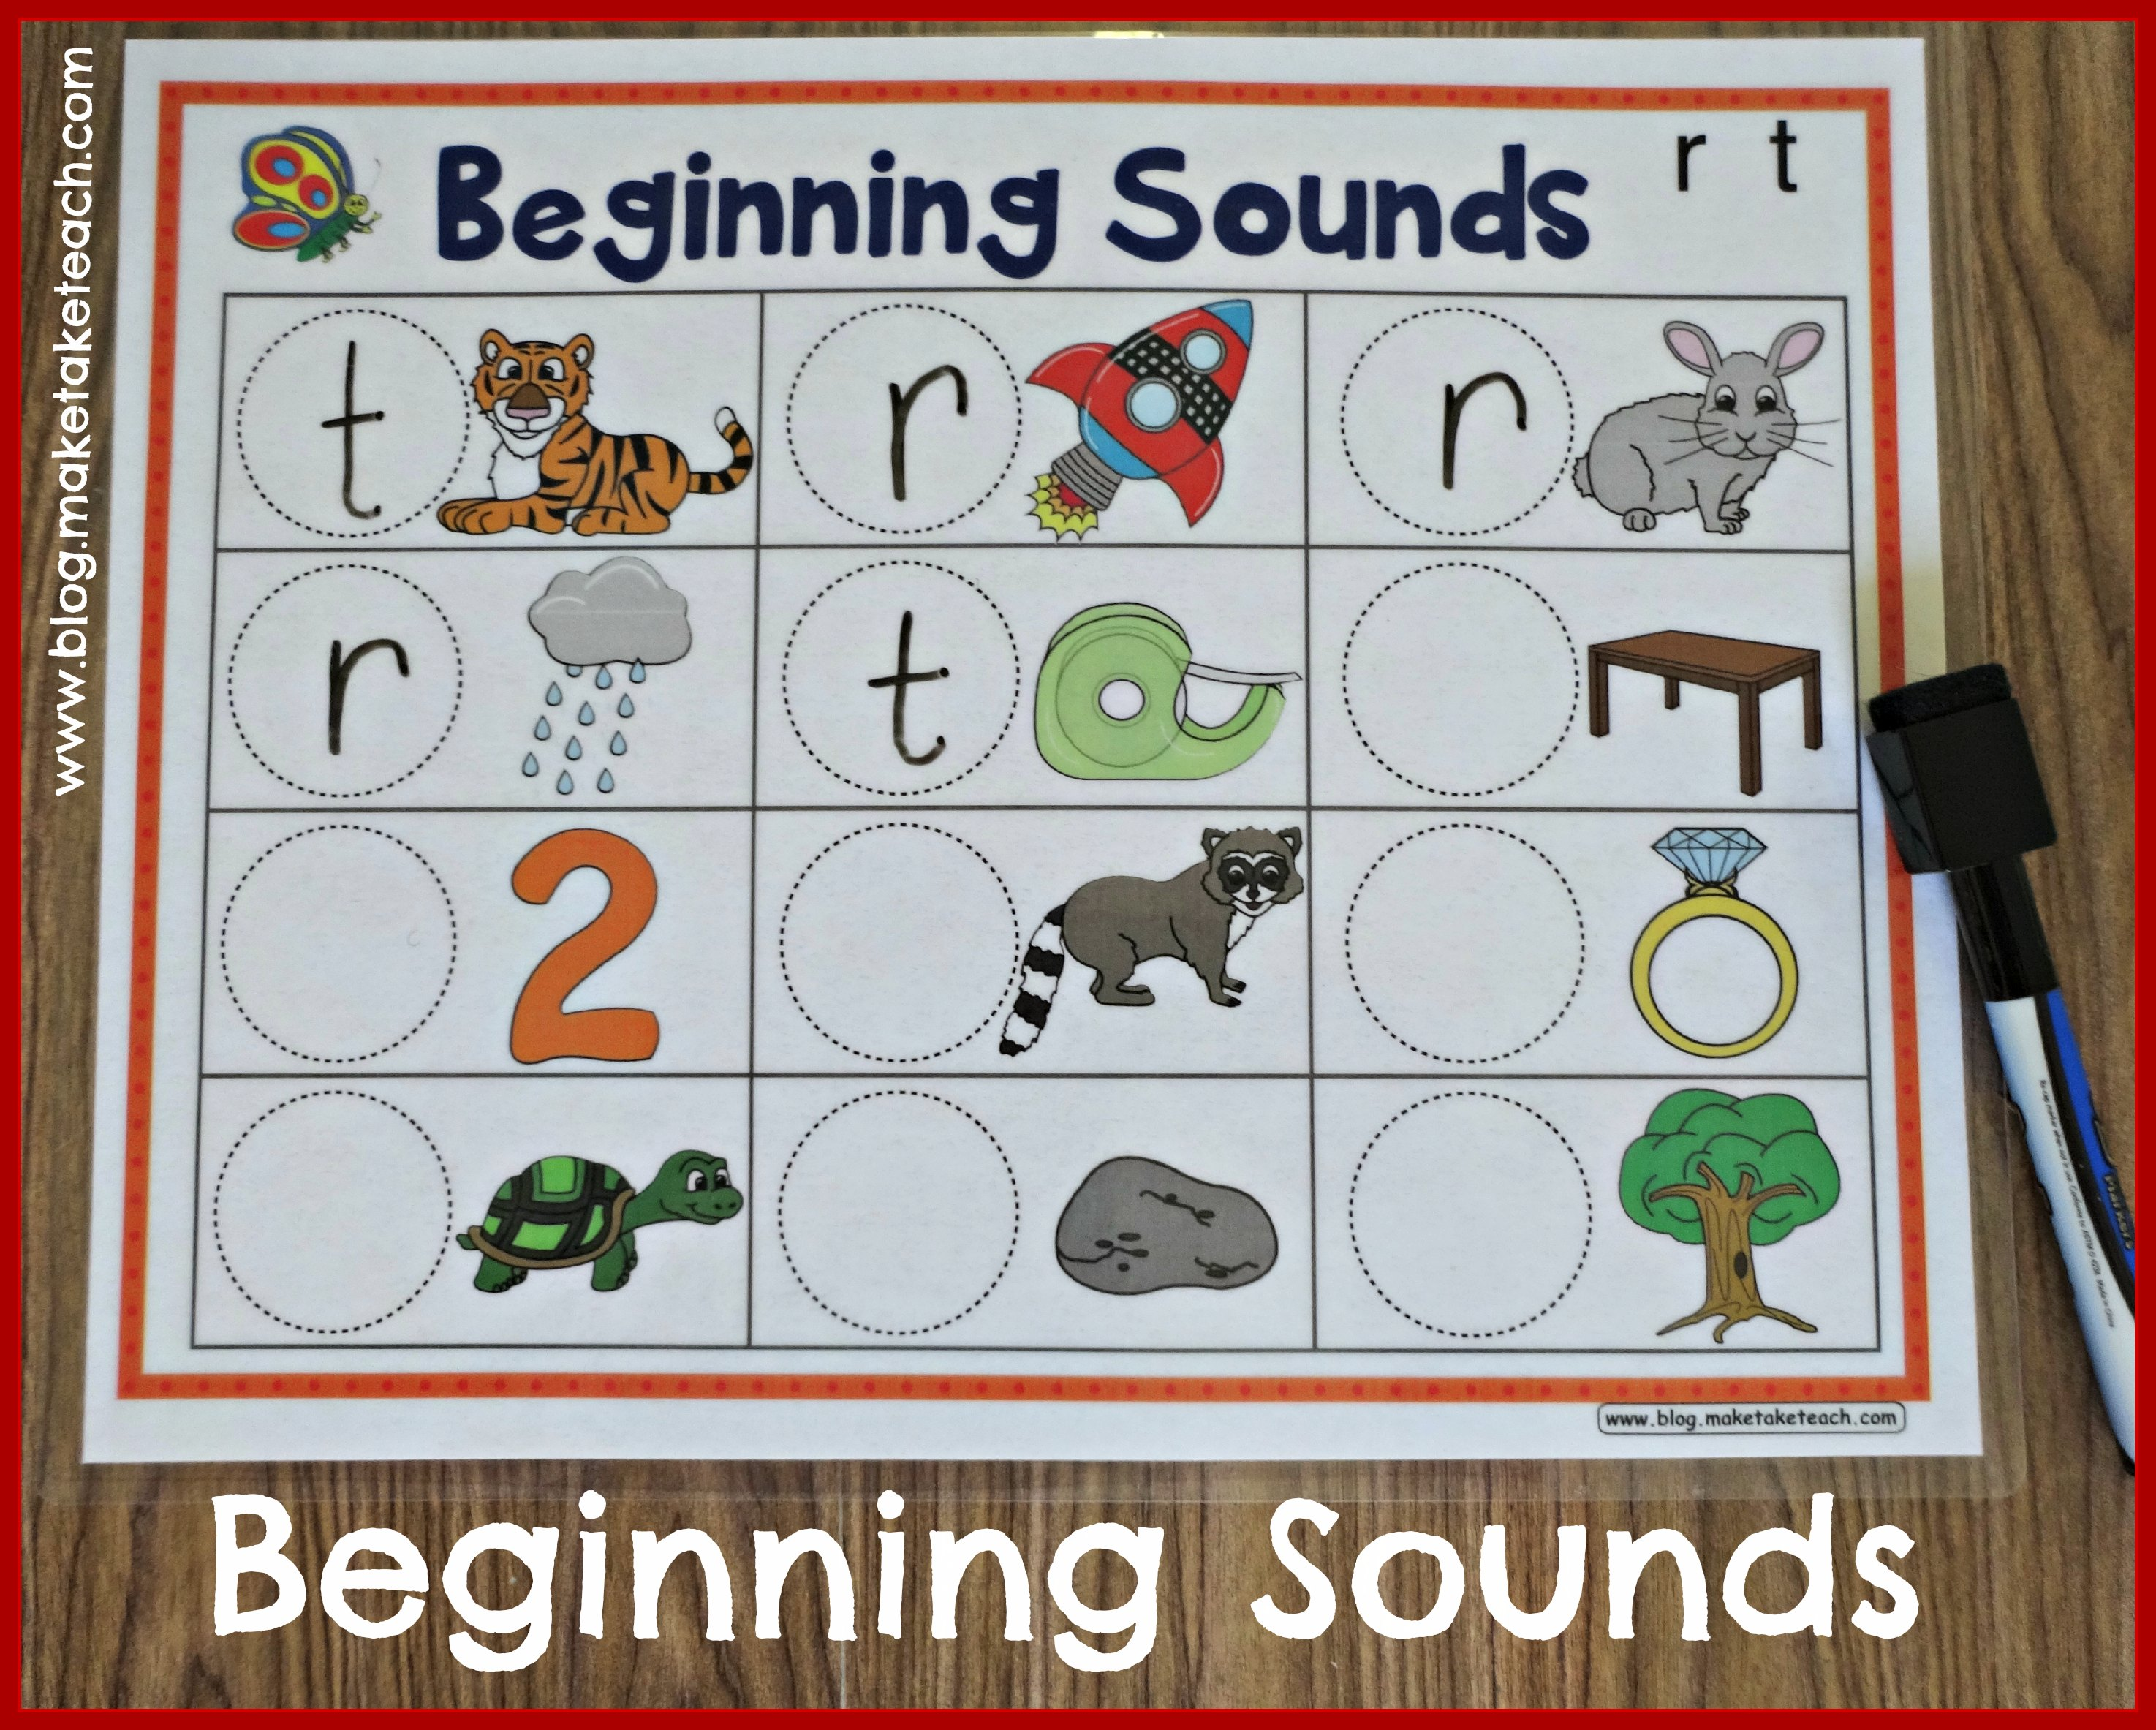 Fun With Beginning Sounds